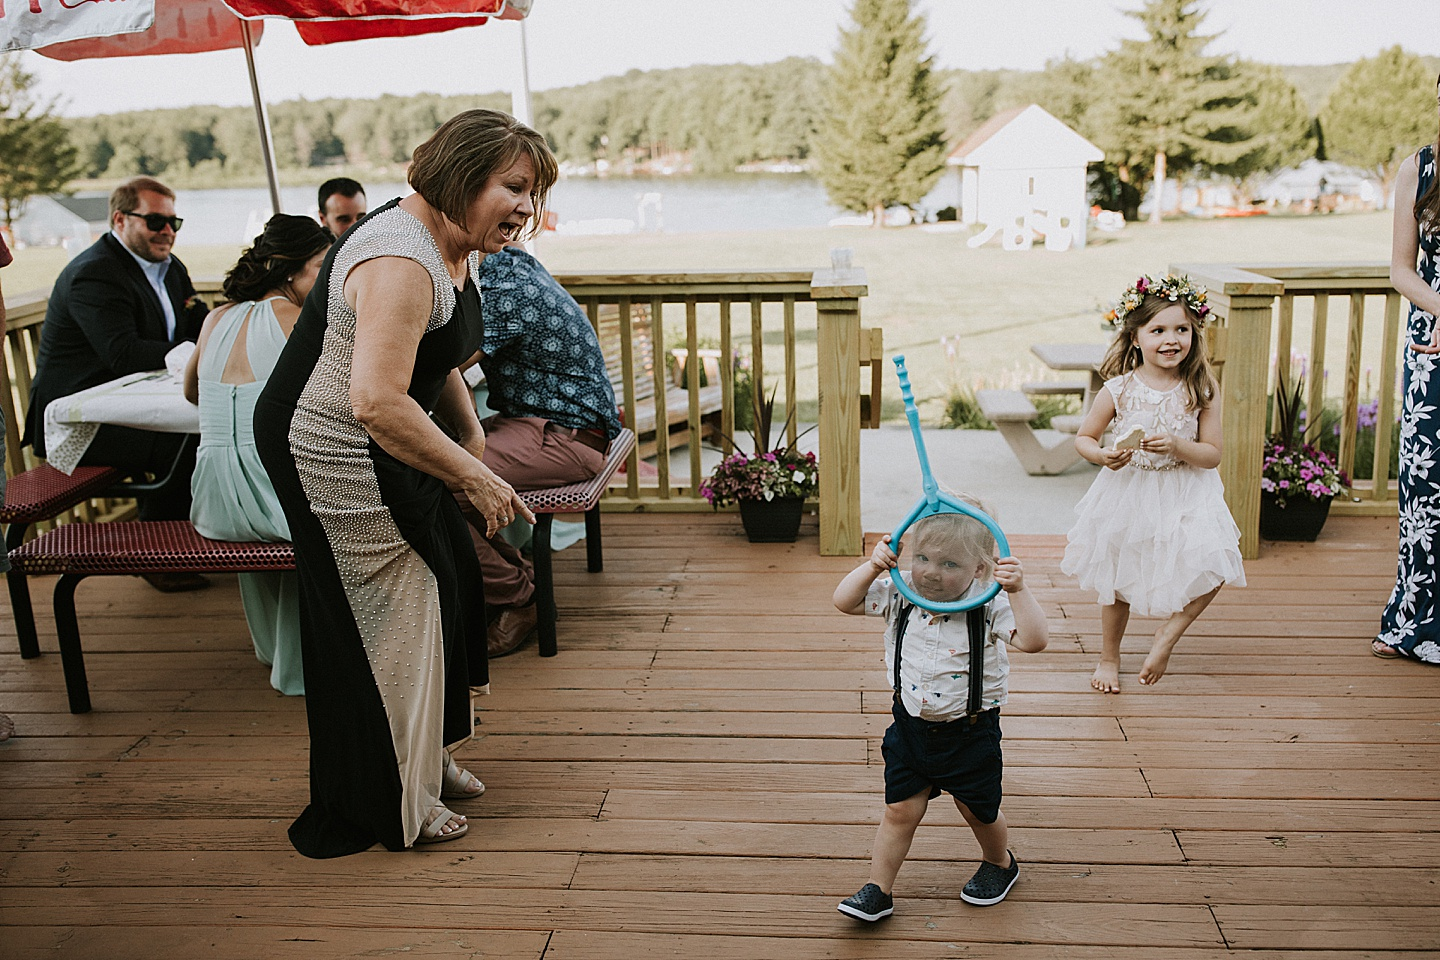 Kids being funny at wedding